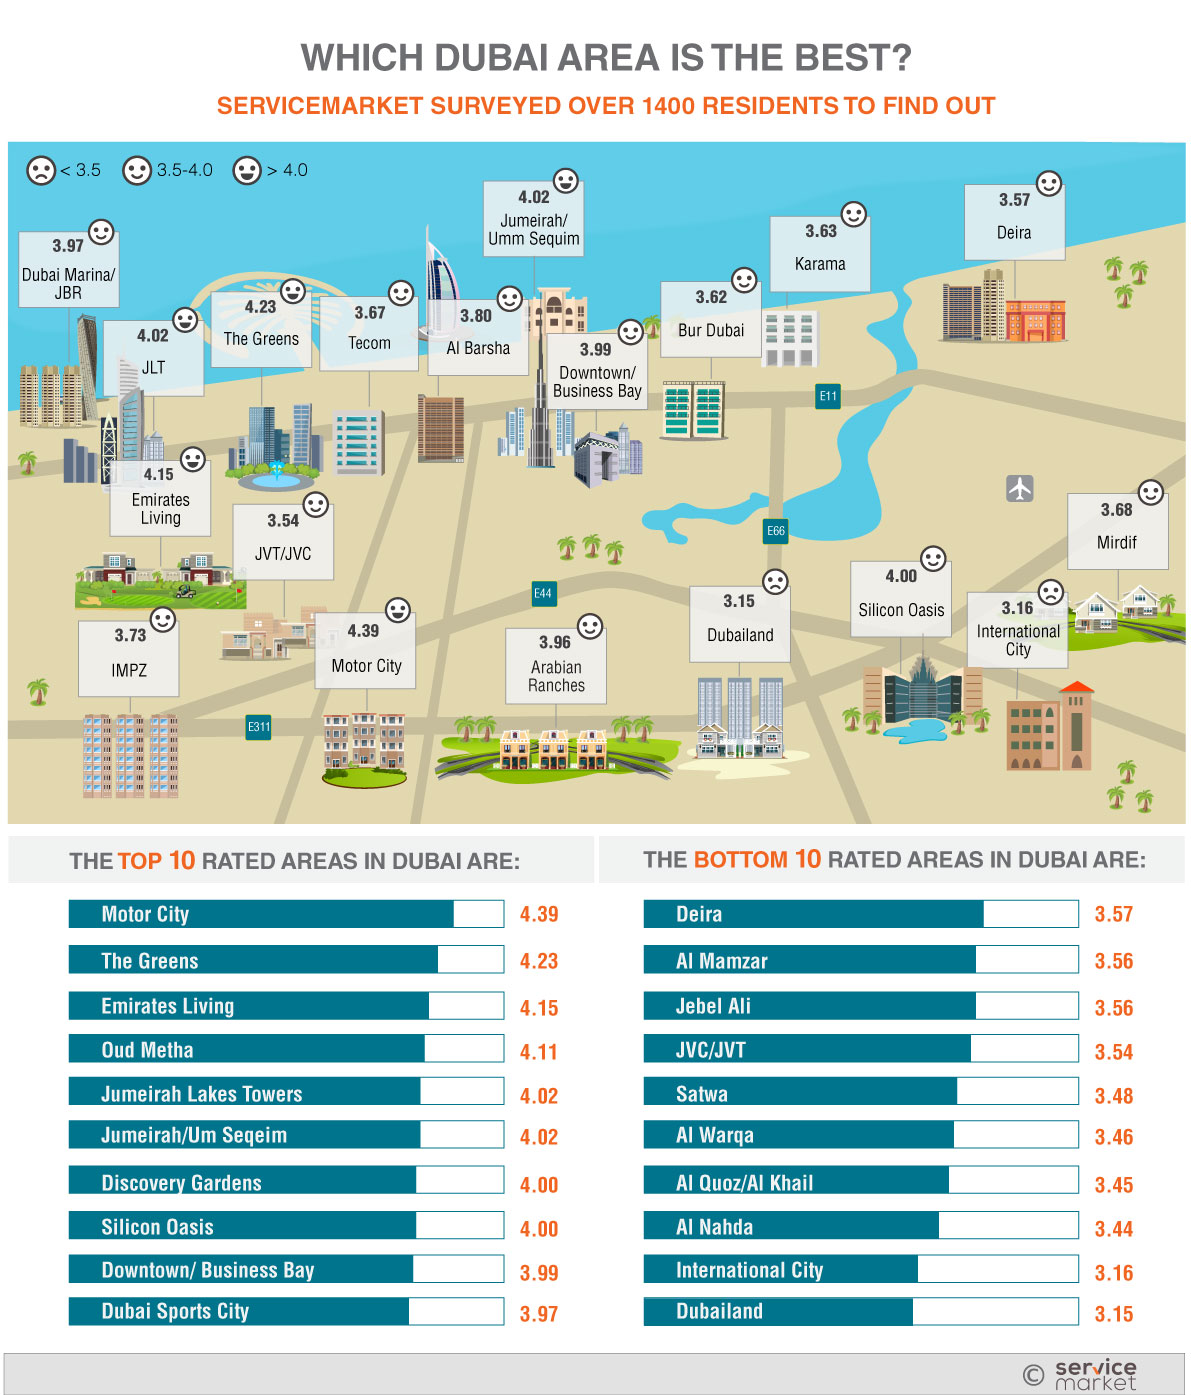 Best place to live in Dubai - Infographic